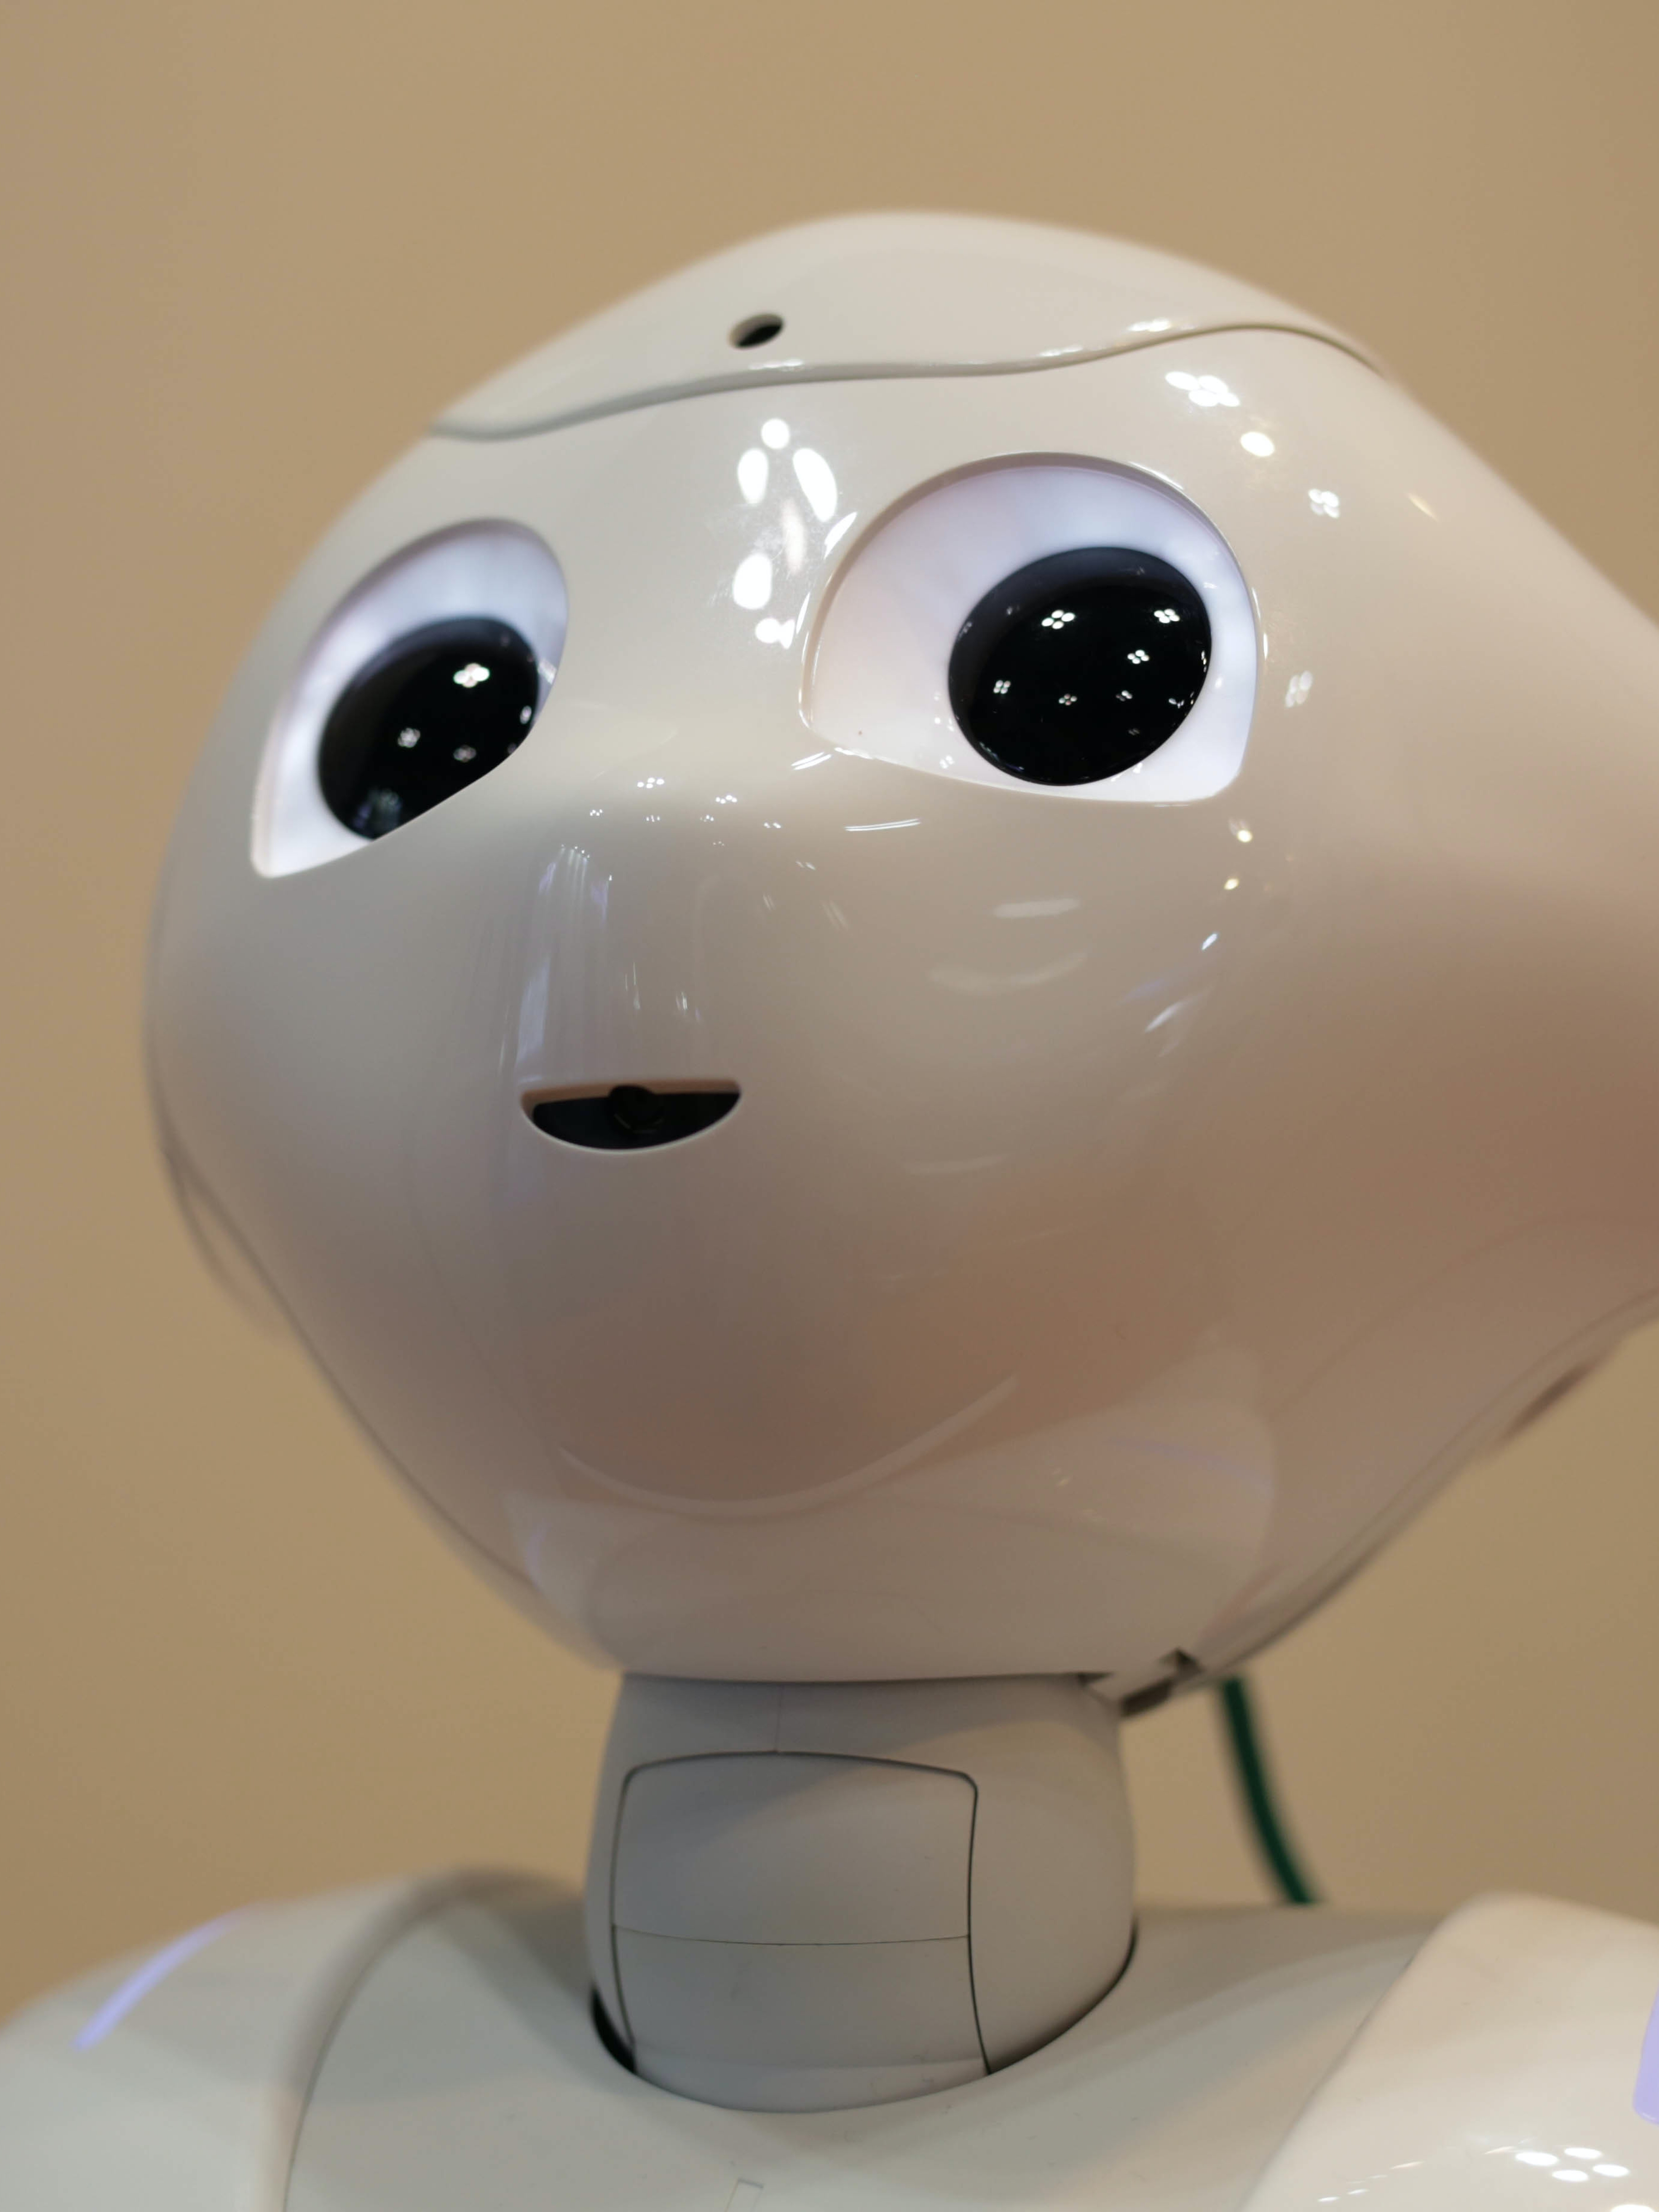 Tokyo Japan October 19 Pepper Robot Developed Softbank Talks Guests Rect Dpr Auto Format Compress 75 Linkedin Founder Reid Hoffman